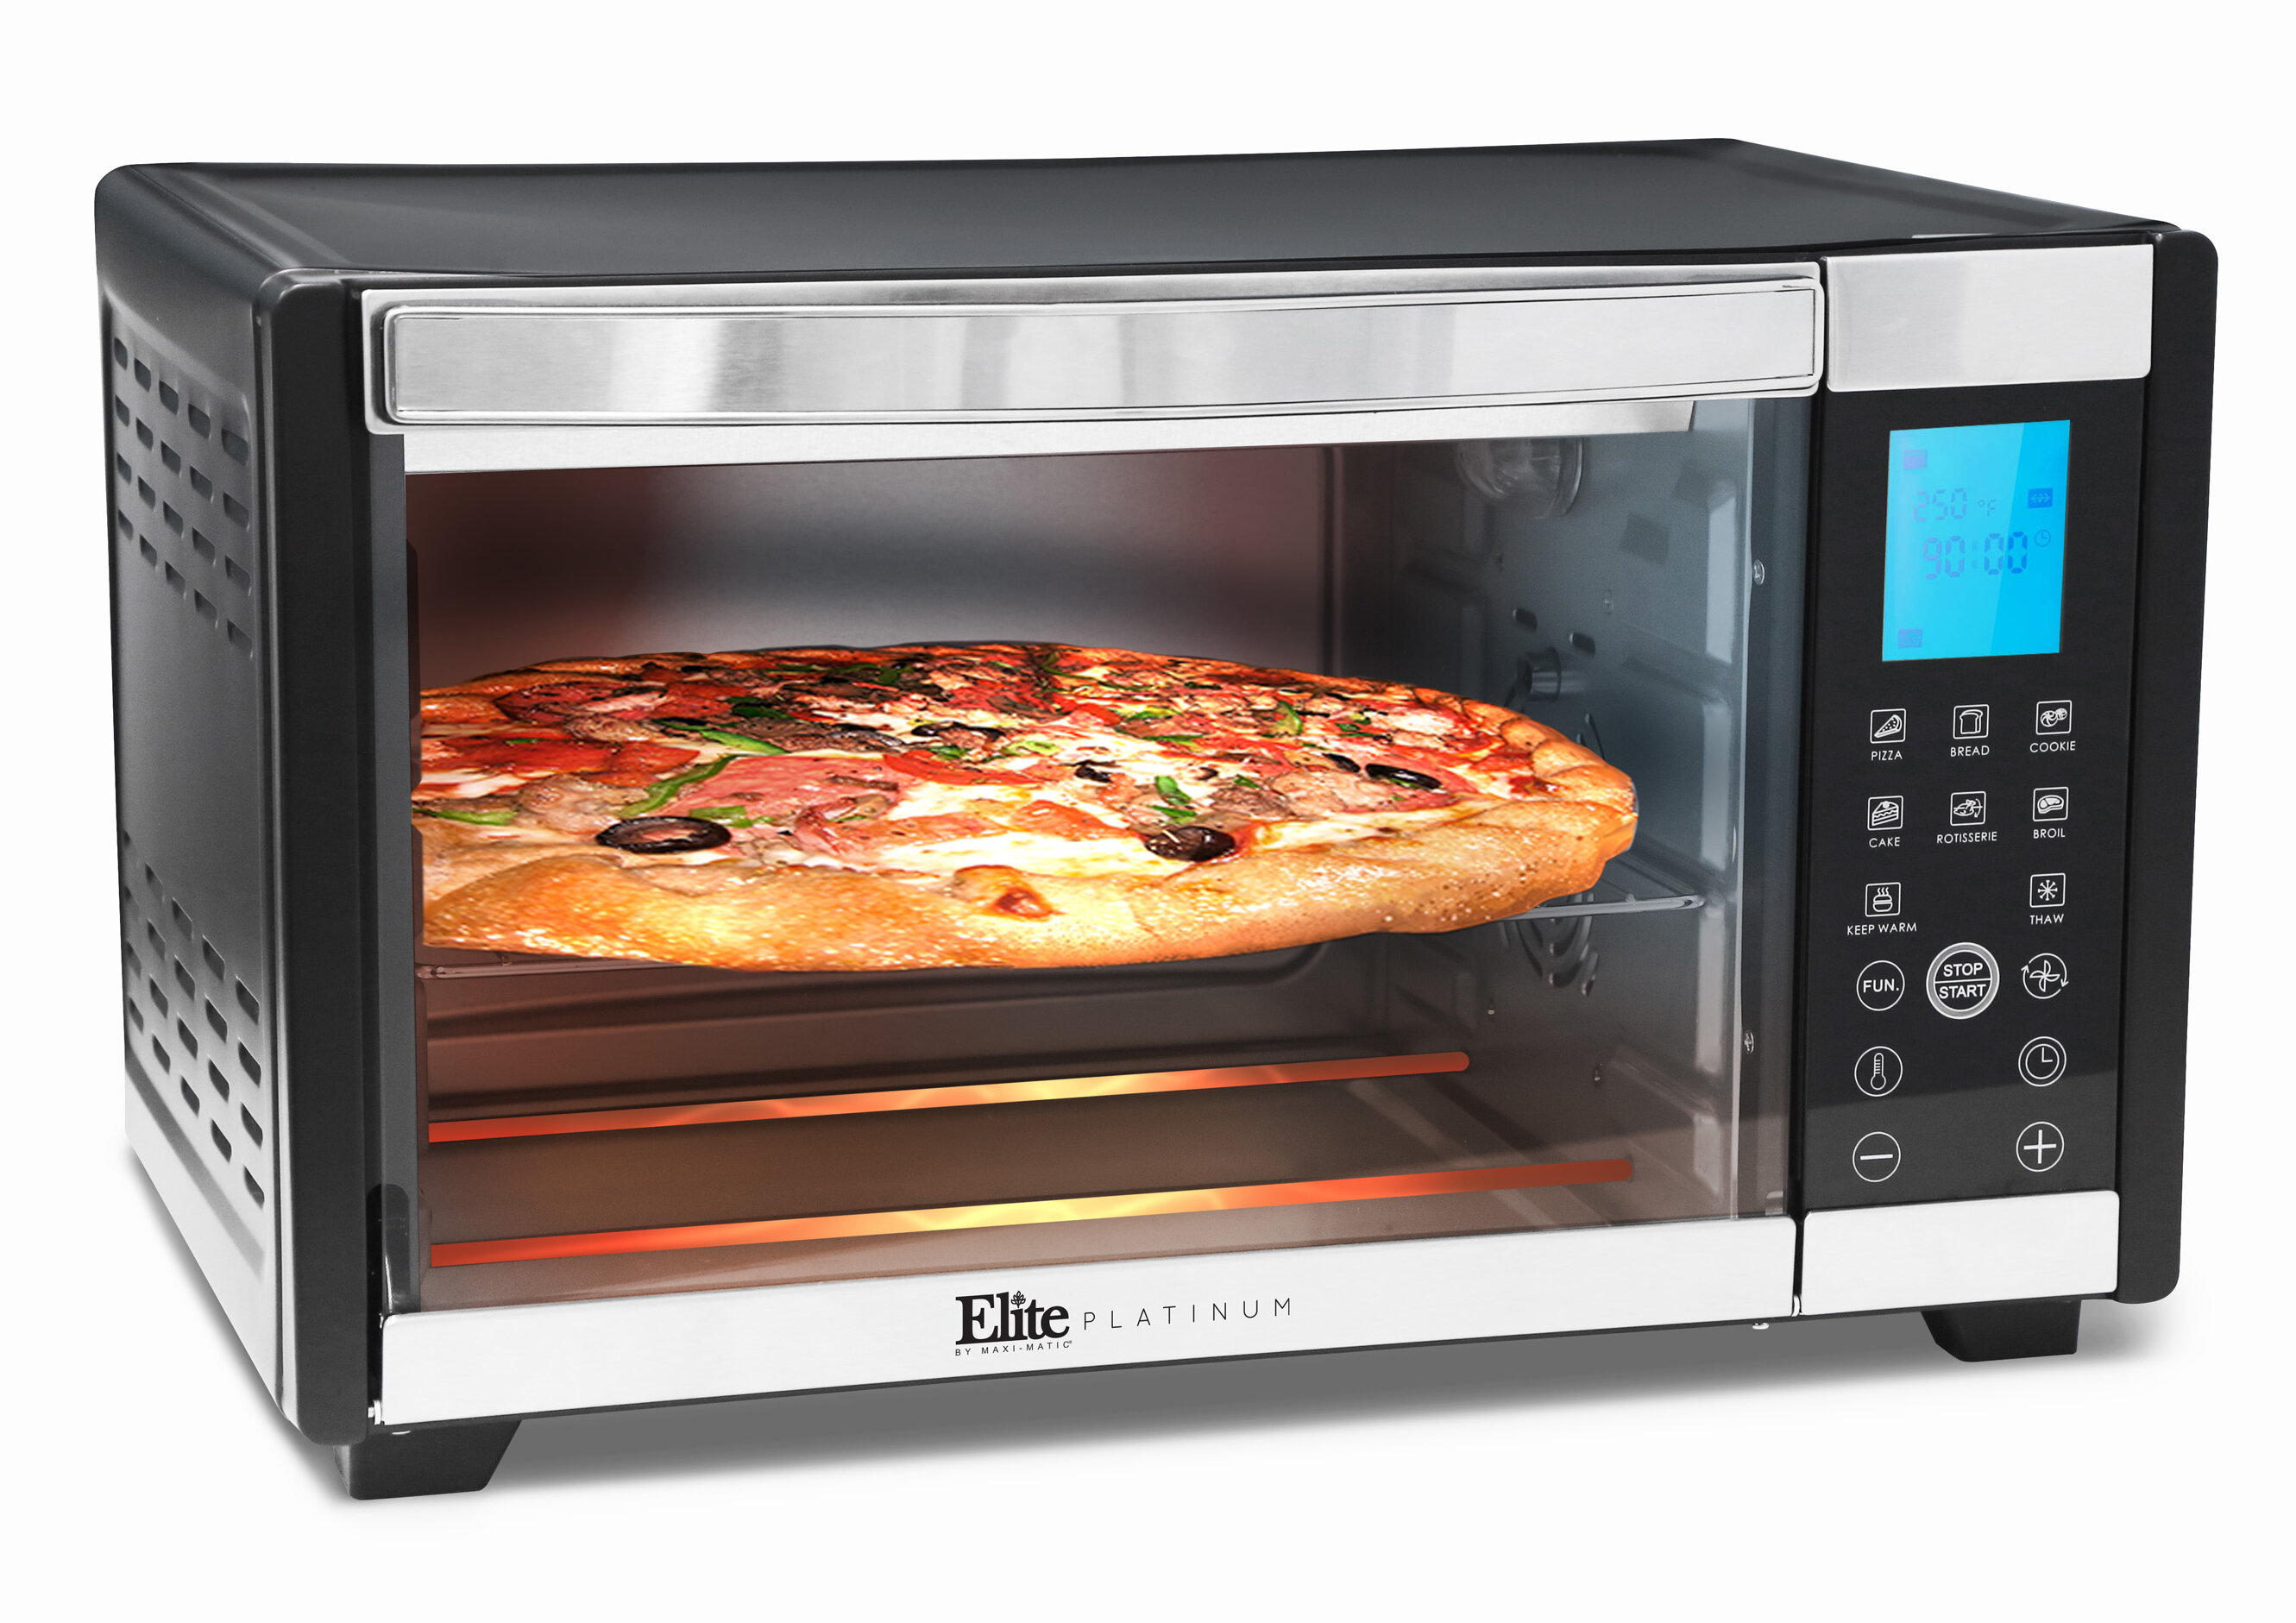 oven walmart cu ft sharp microwave com countertops steel large convection stainless carousel ip countertop